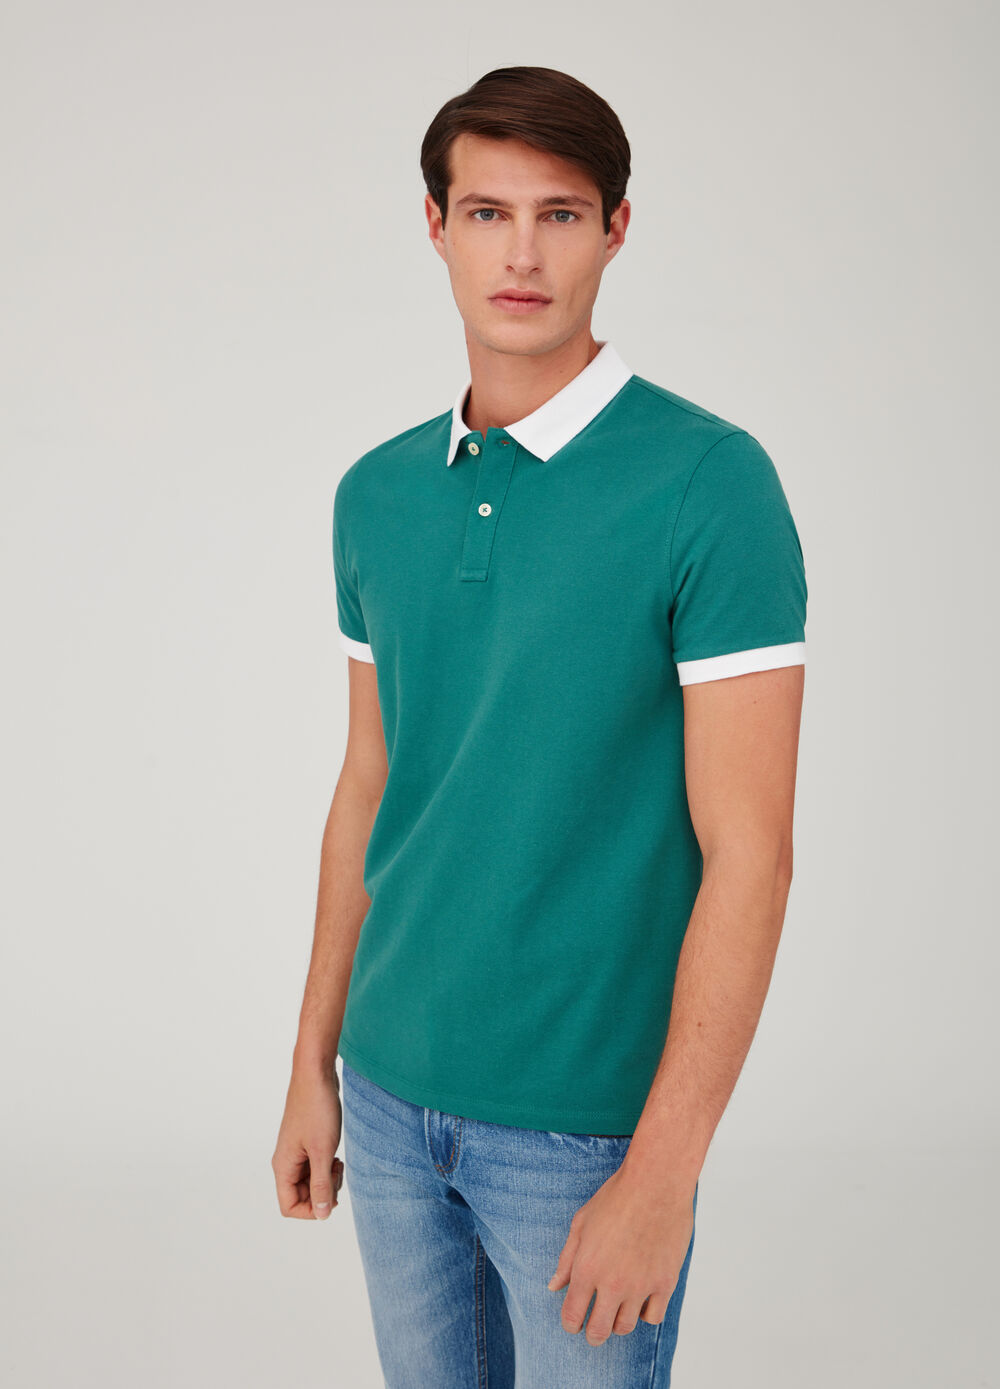 Cotton piquet polo shirt with contrasting ribbing